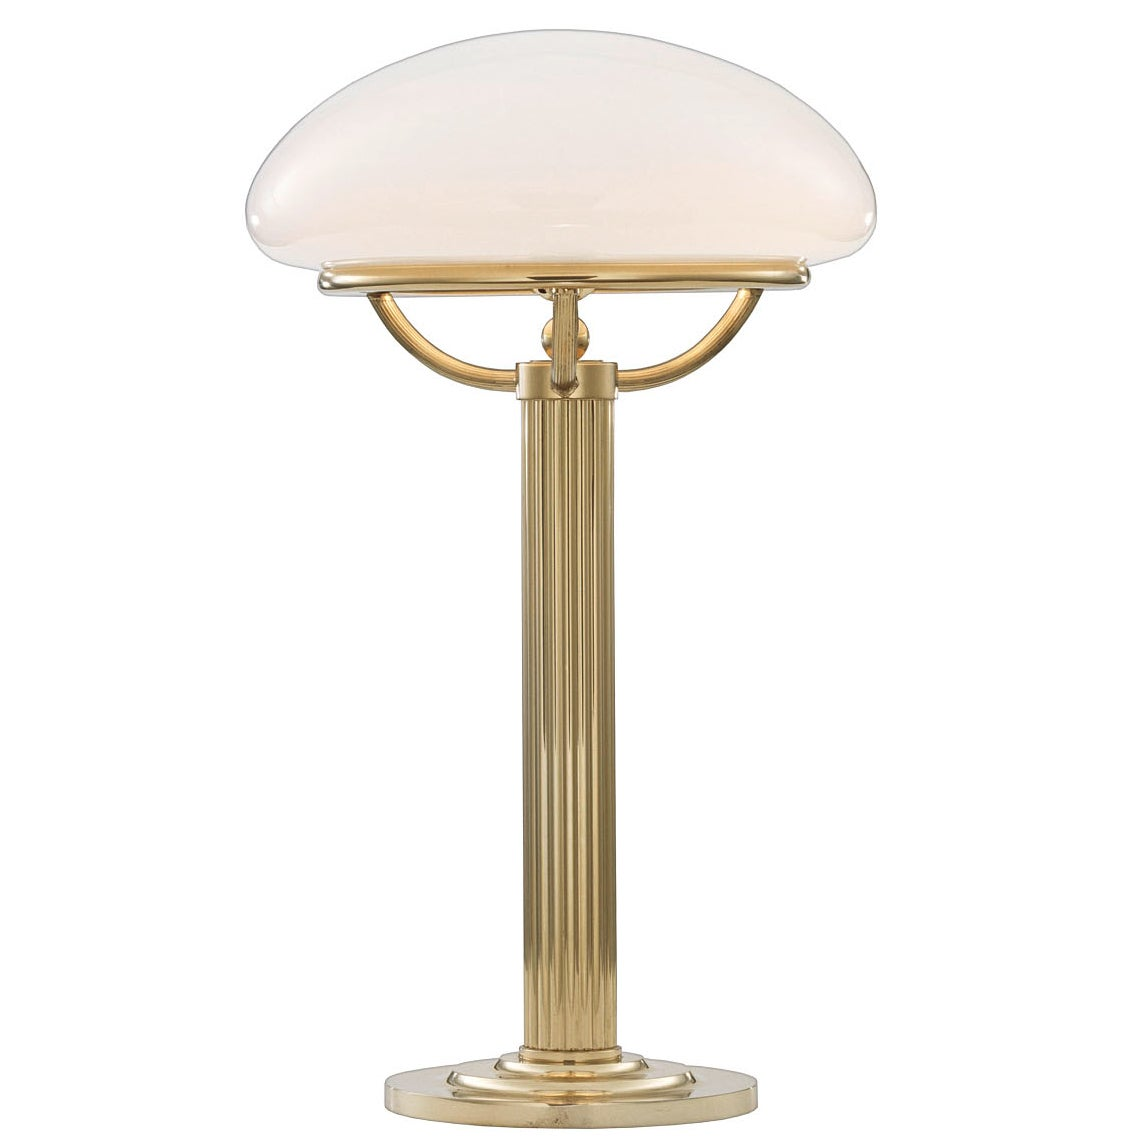 Adolf Loos Vienna Secessionist, Jugendstil Brass Table Lamp - Re edition